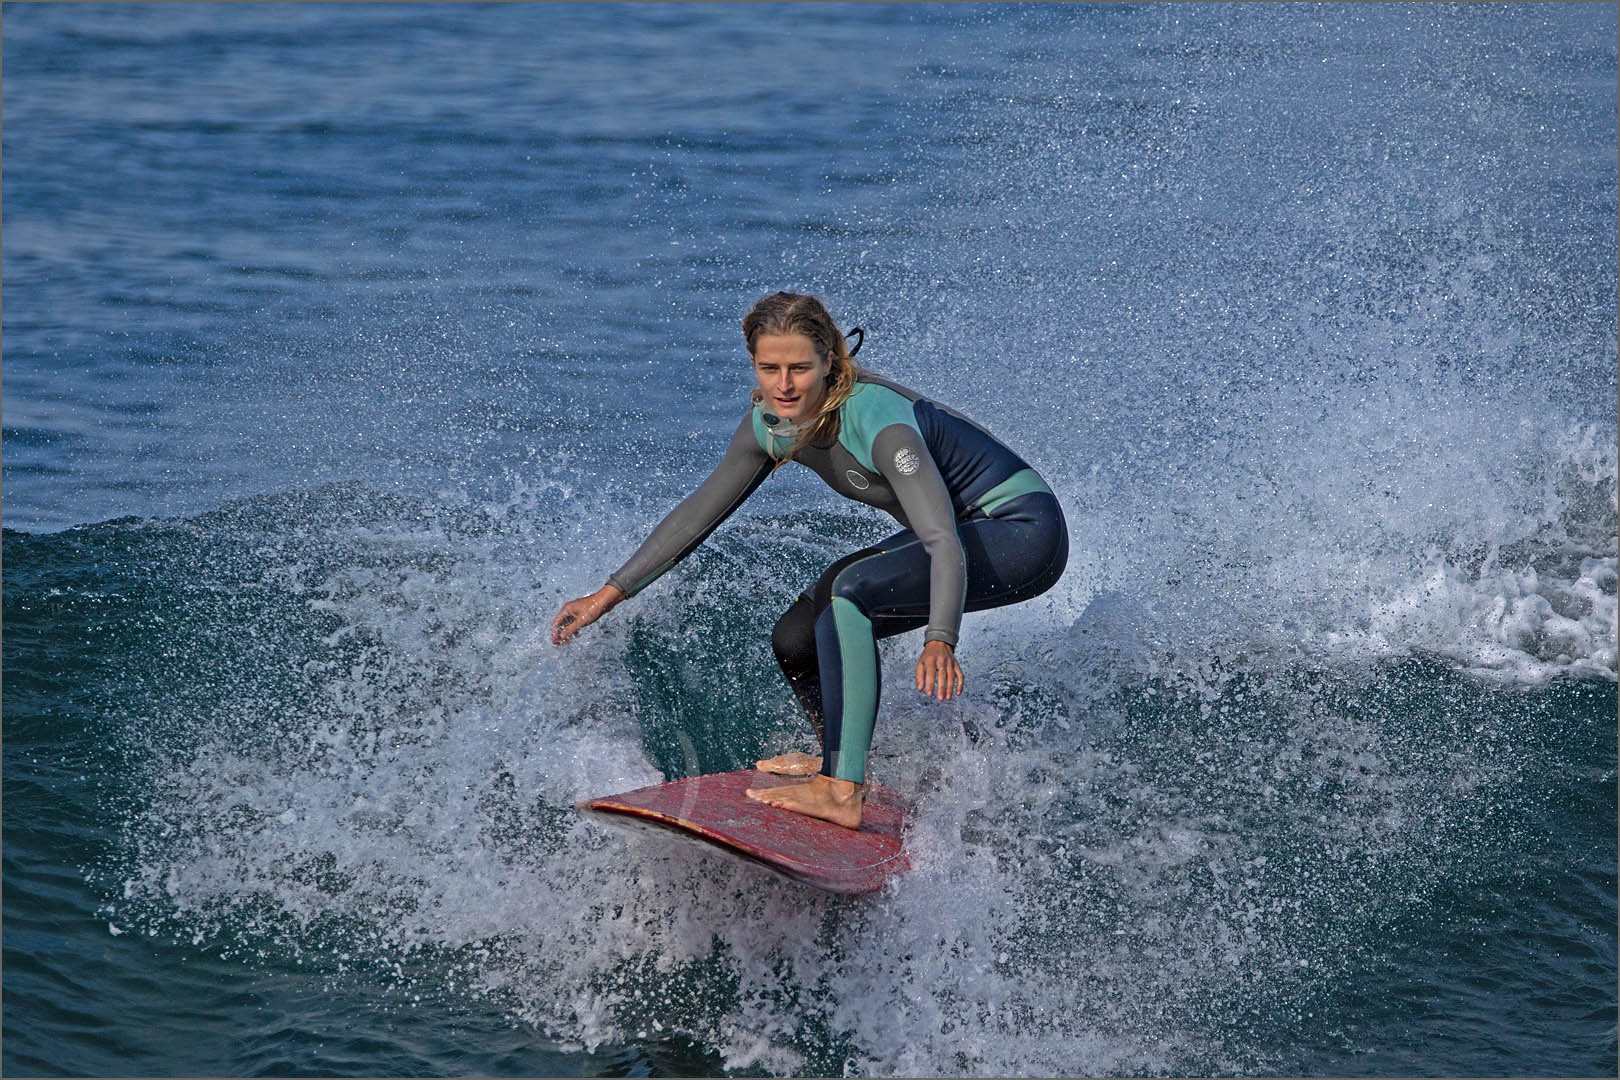 2_PI_The joy of catching the wave_Fabiola Geeven